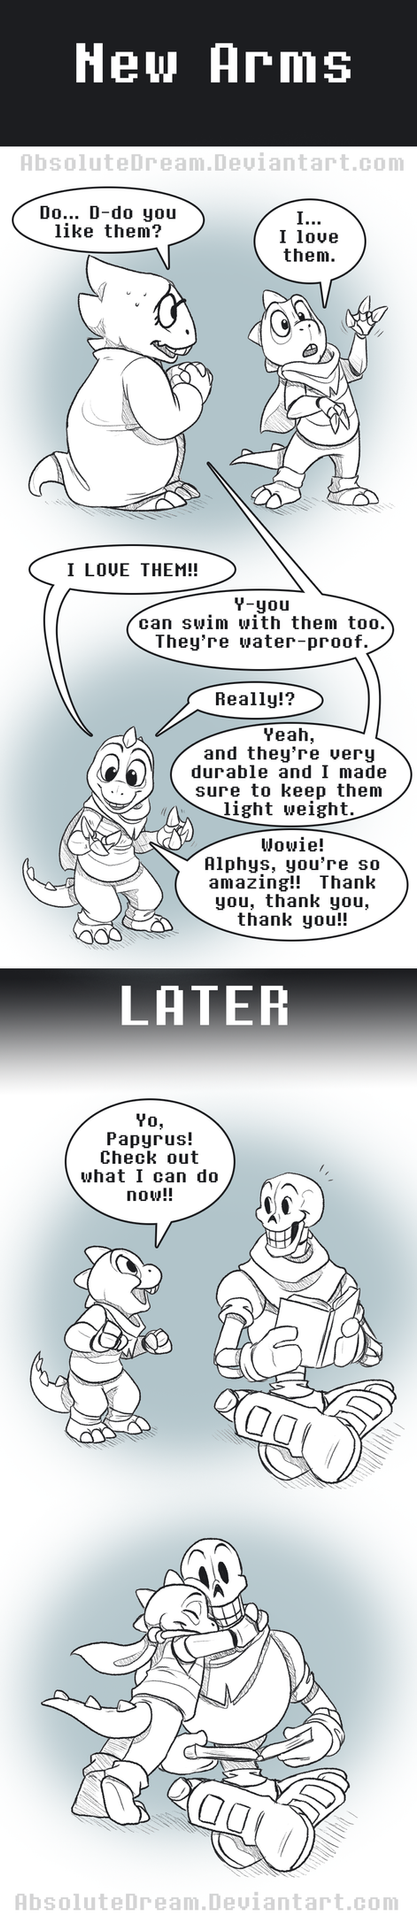 UT Comic: New Arms by AbsoluteDream